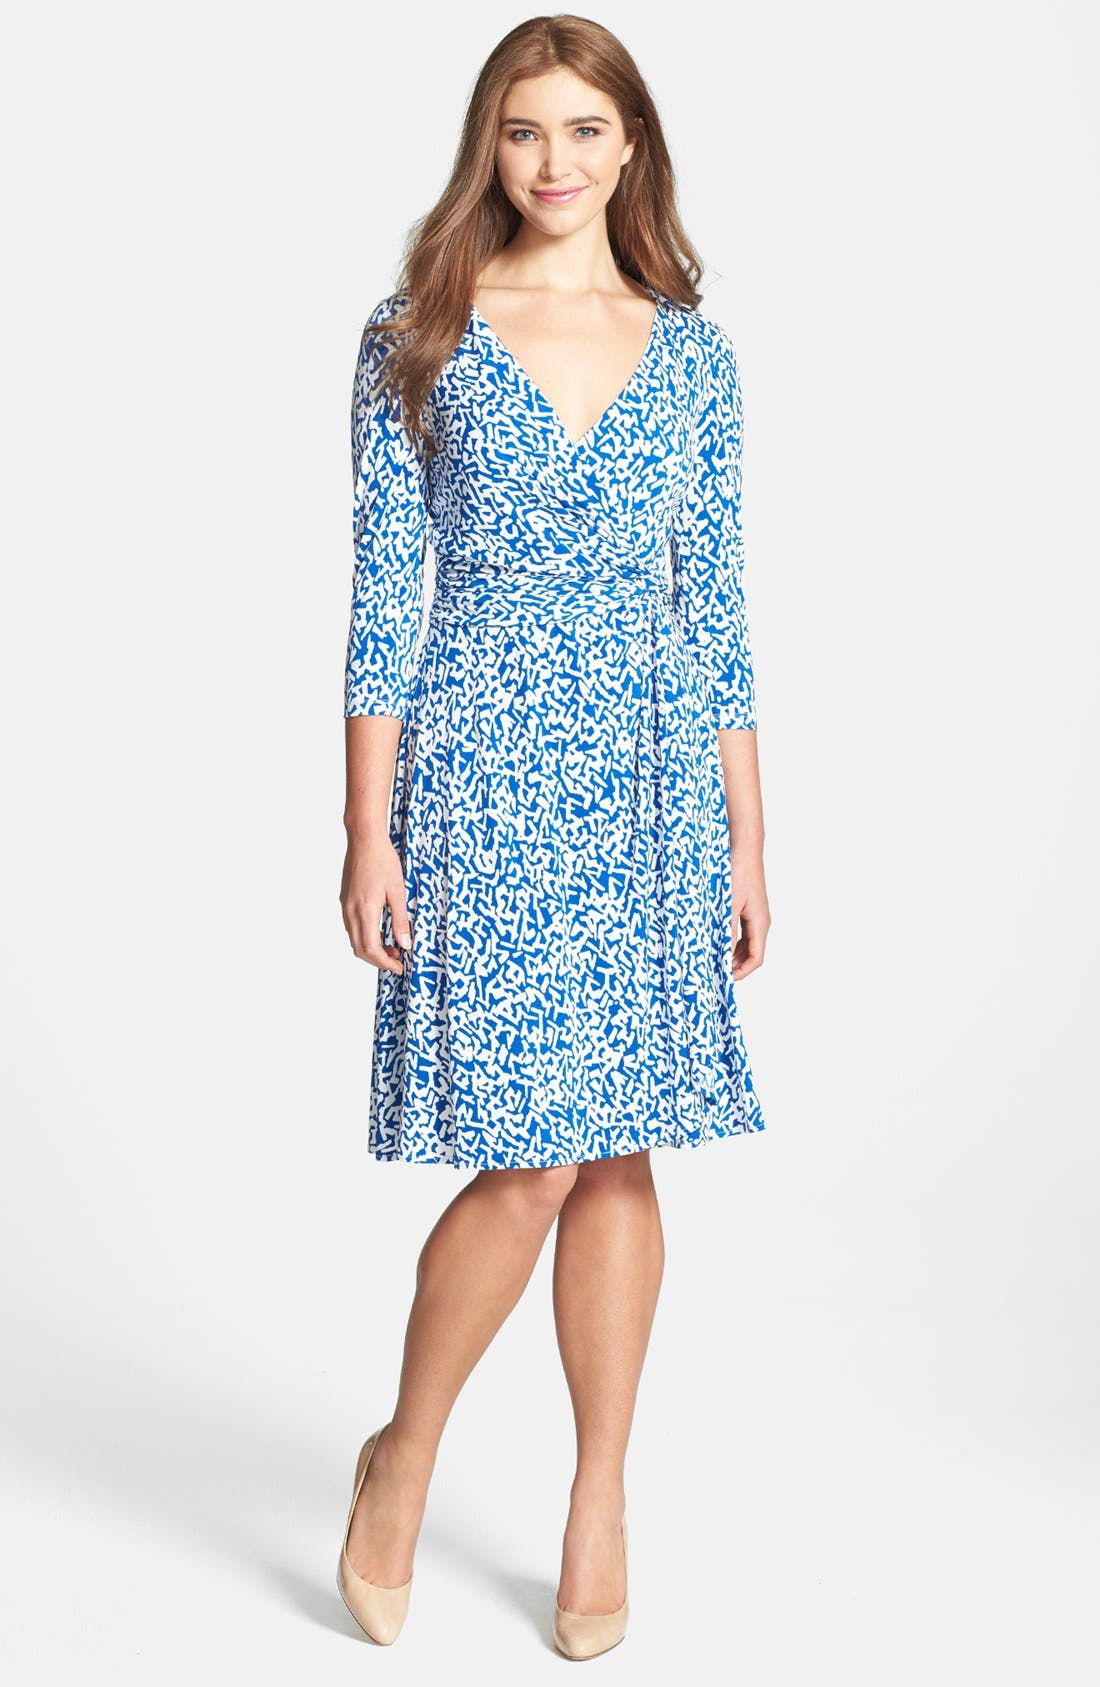 Alternate Image 1 Selected - Maggy London Print Matte Jersey Faux Wrap Dress (Petite)